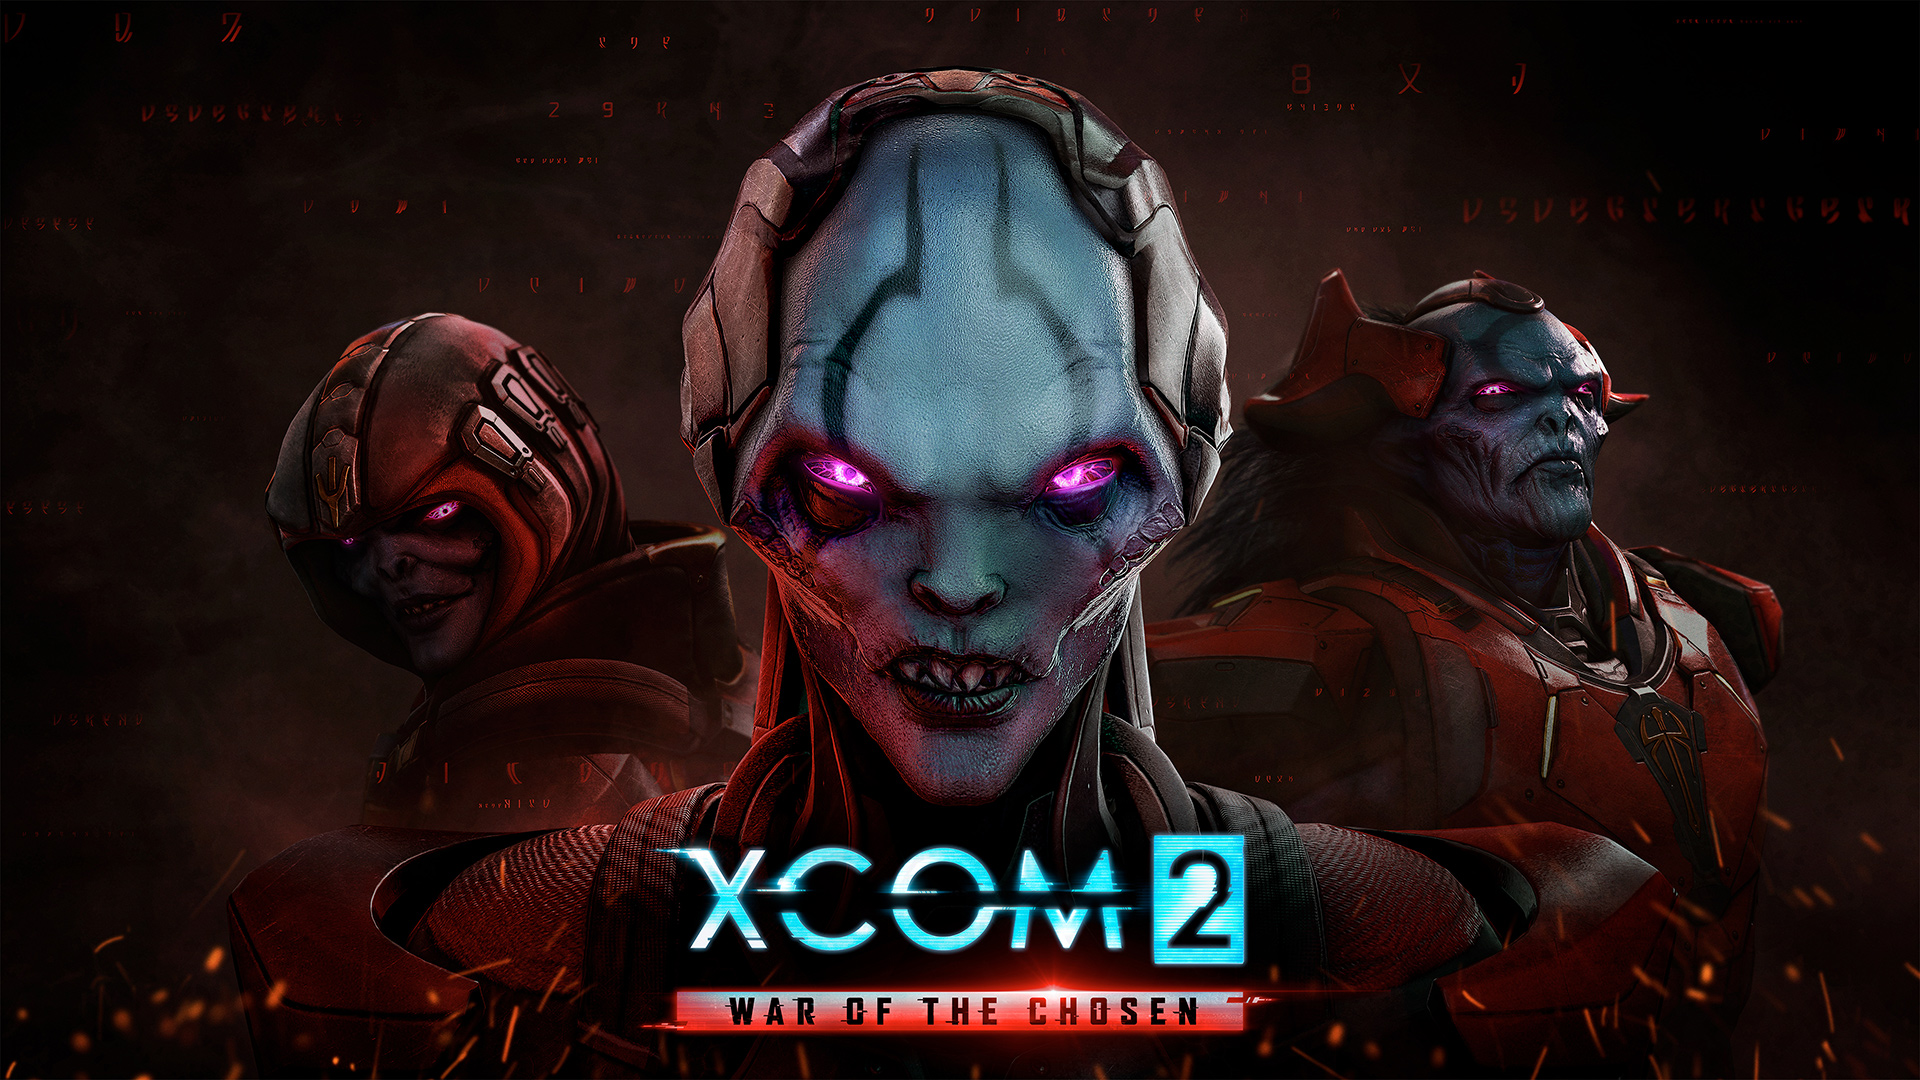 xcom 2 war of the chosen - key art